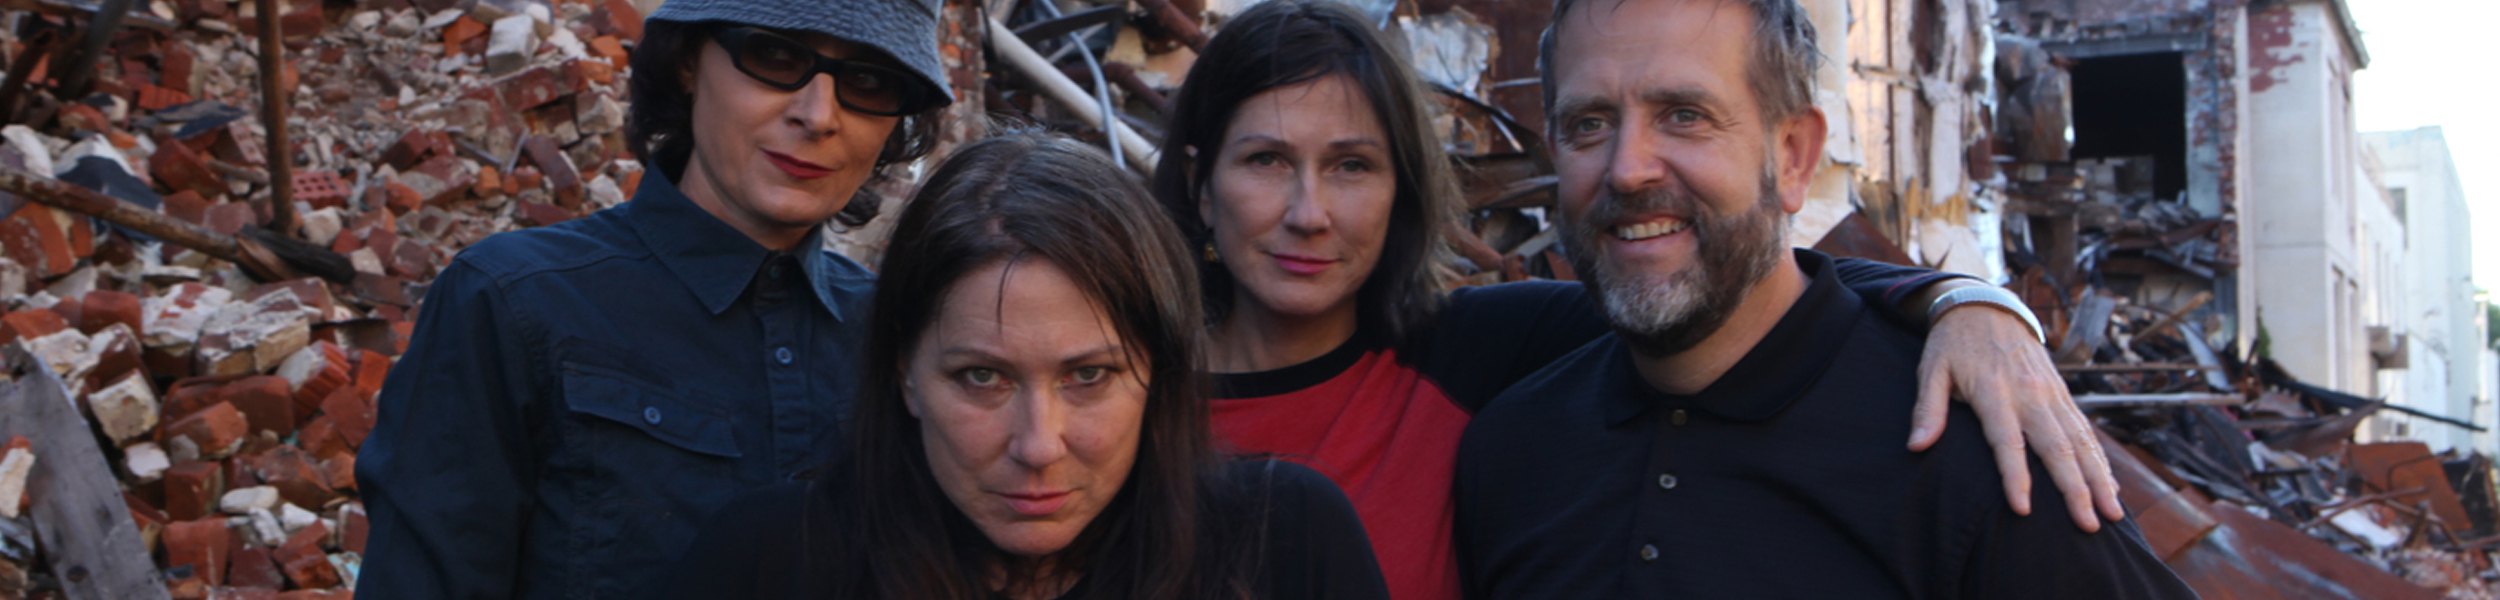 The Breeders - The Breeders Announce Further Details of Last Splash 20th Anniversary Vinyl and CD Sets